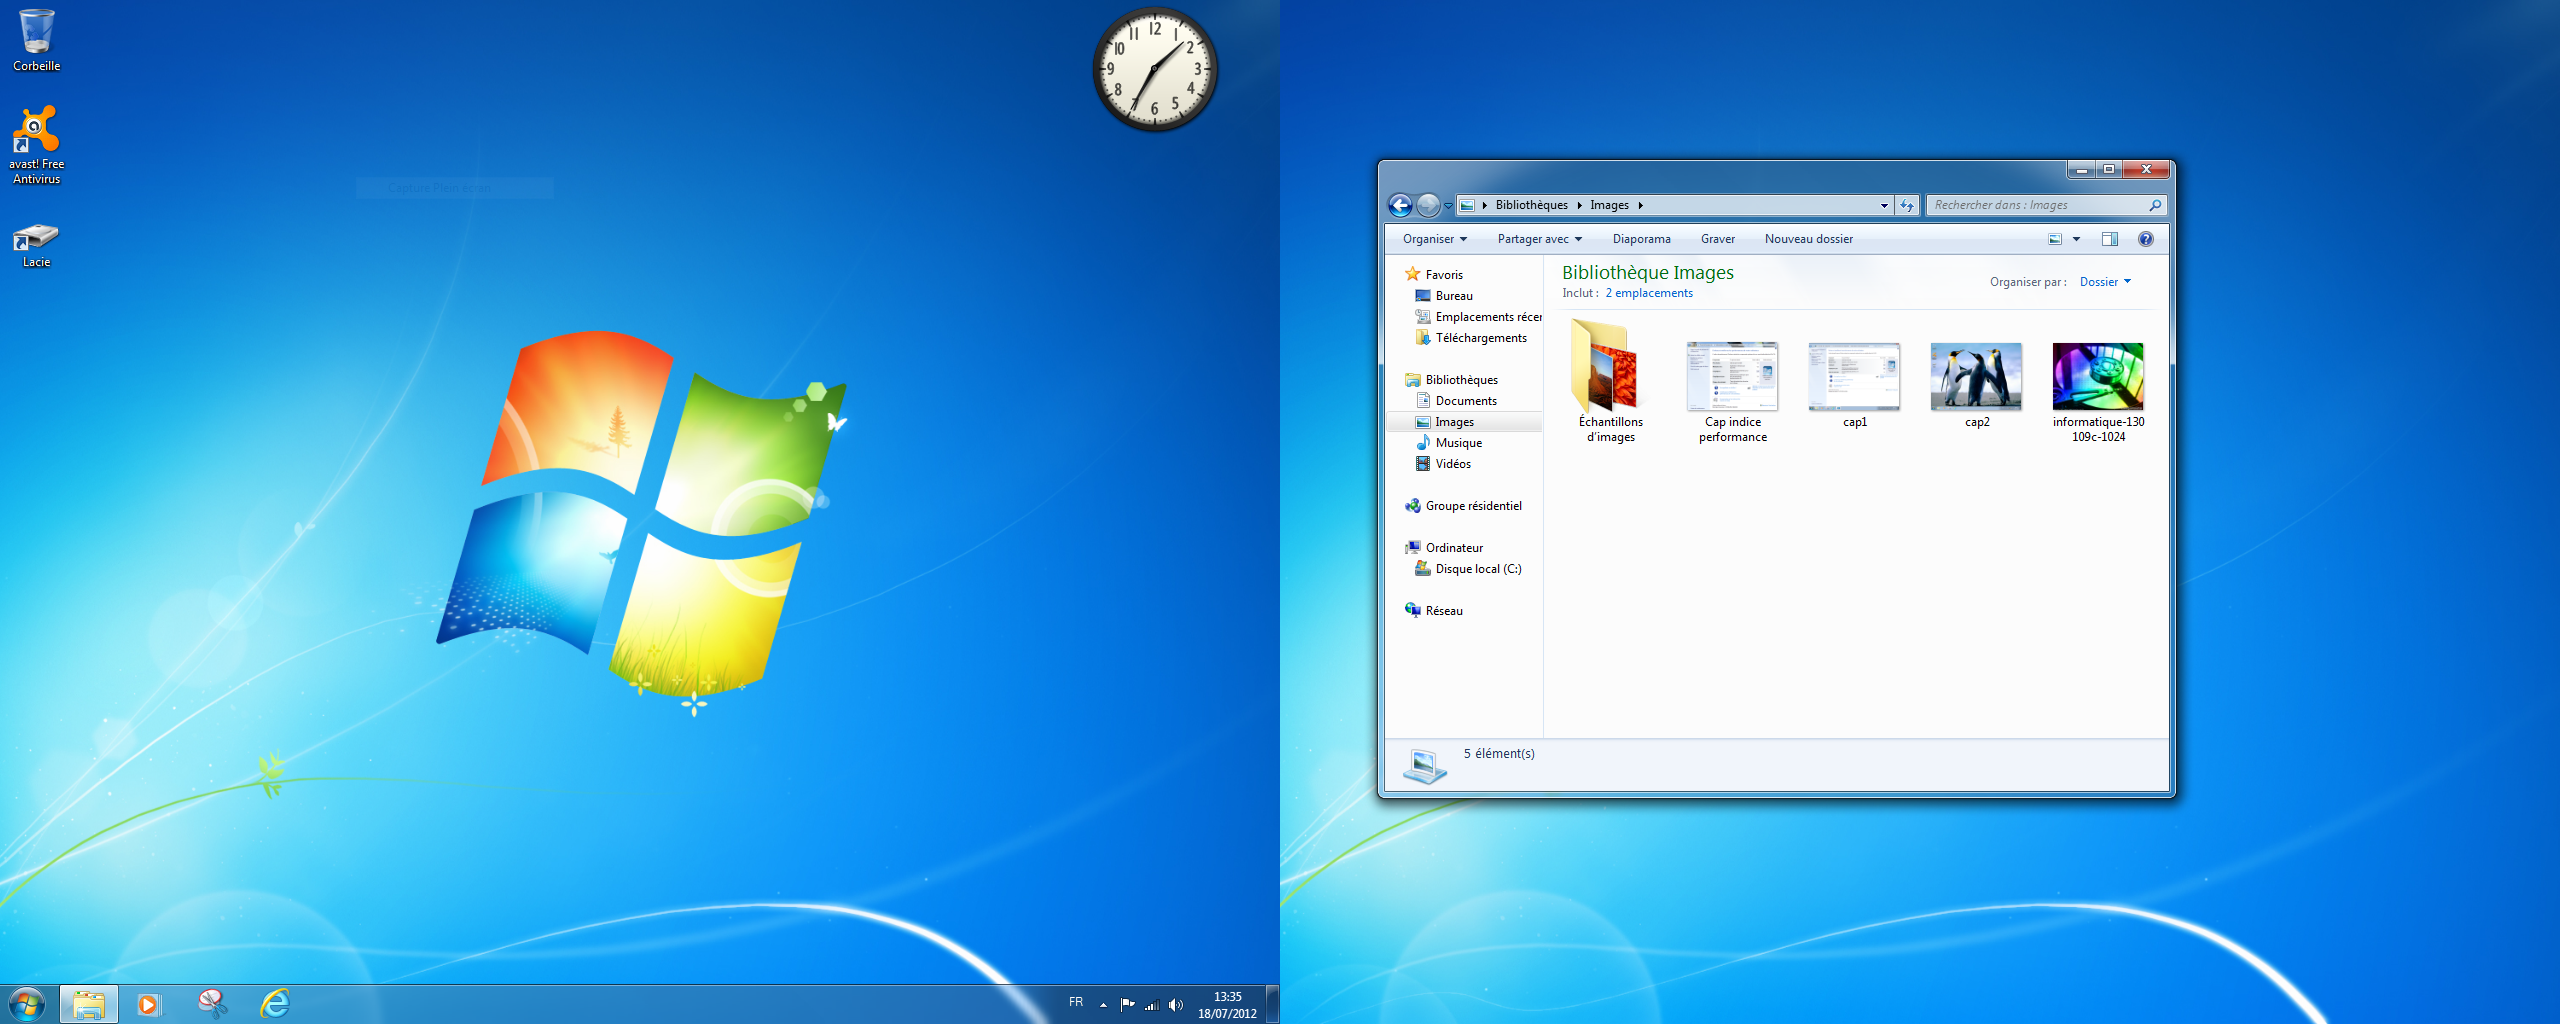 Solde pc bureau windows 7 28 images module 1 for Bureau windows 7 rainmeter